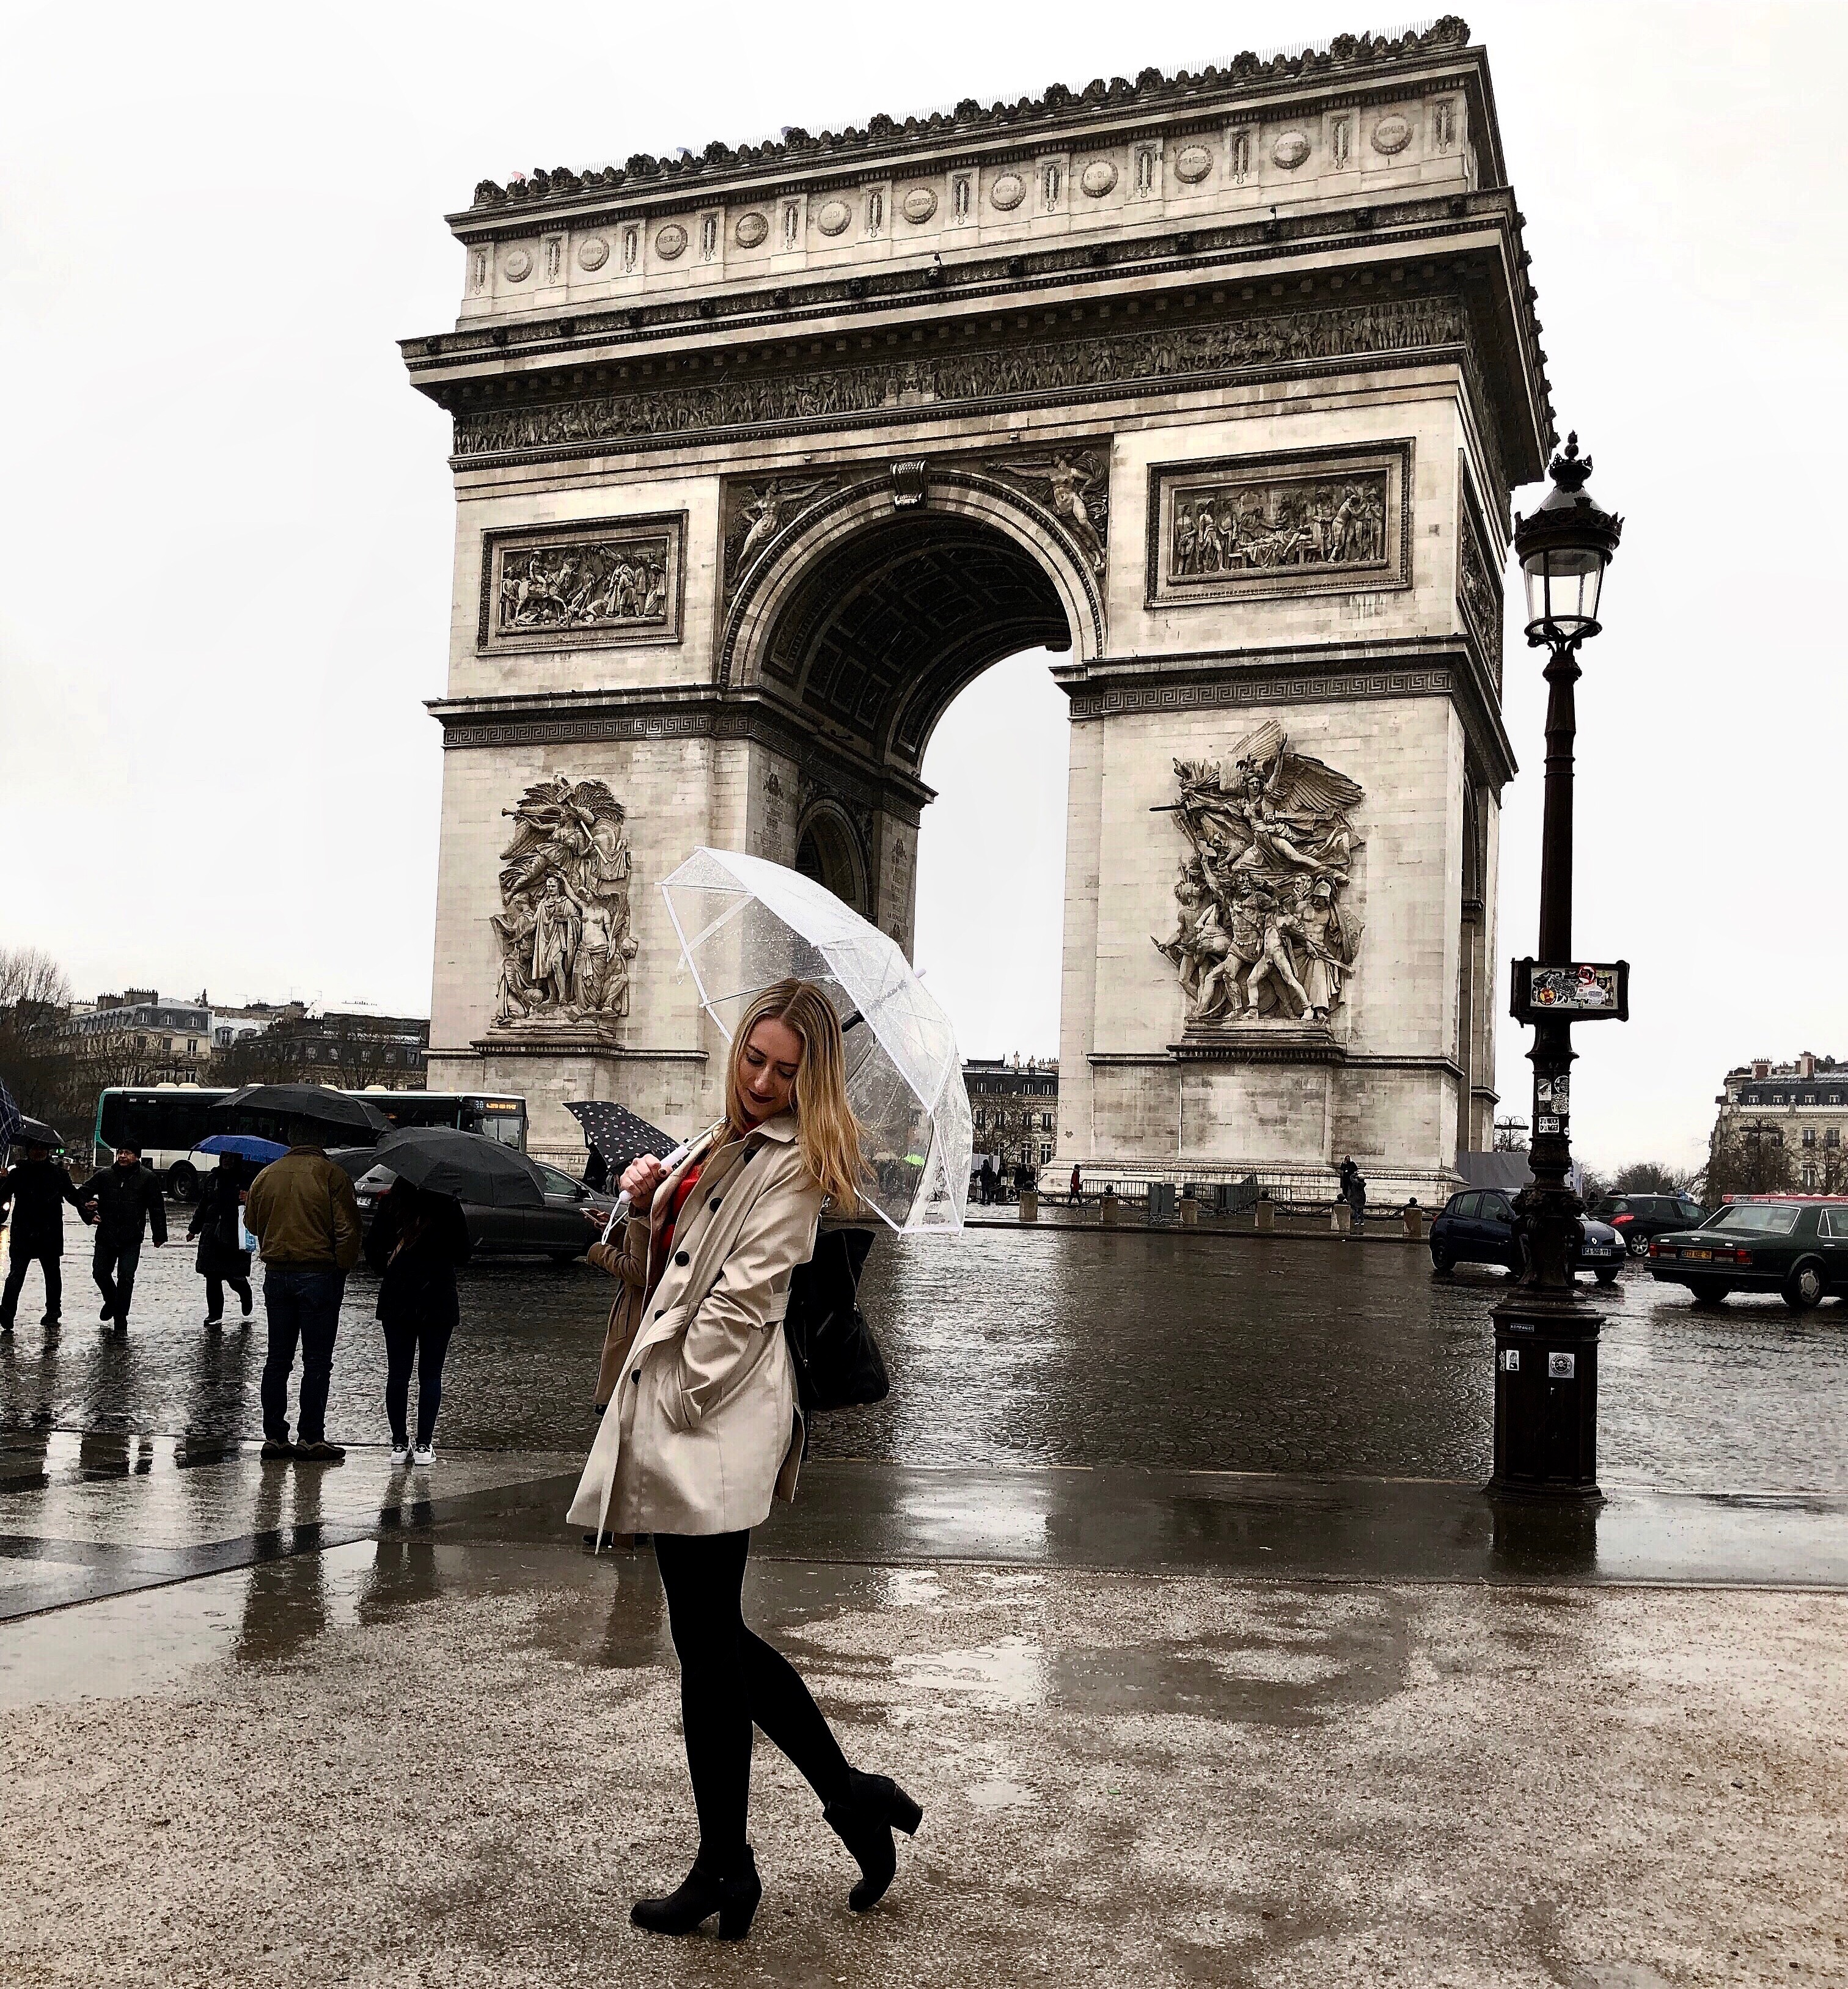 CAPAStudyAbroad_London_Spring2018_From Kelly Allen - At the Arc de Triomphe in Paris, France